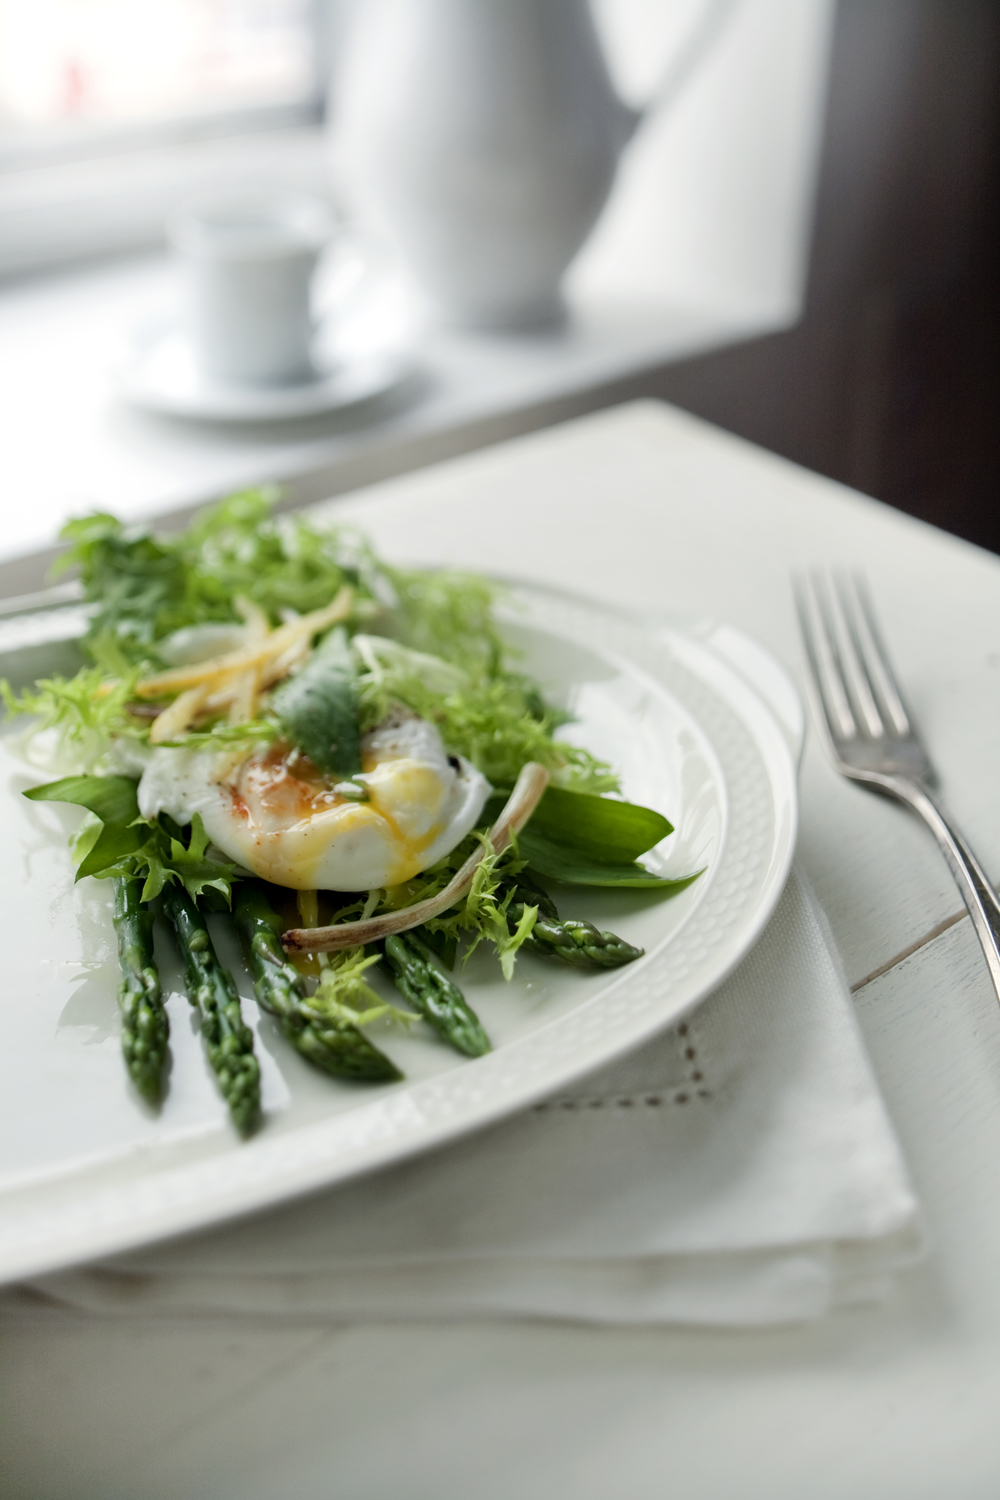 Poached Egg, Ramp Greens, Lemon Zest Vinaigrette